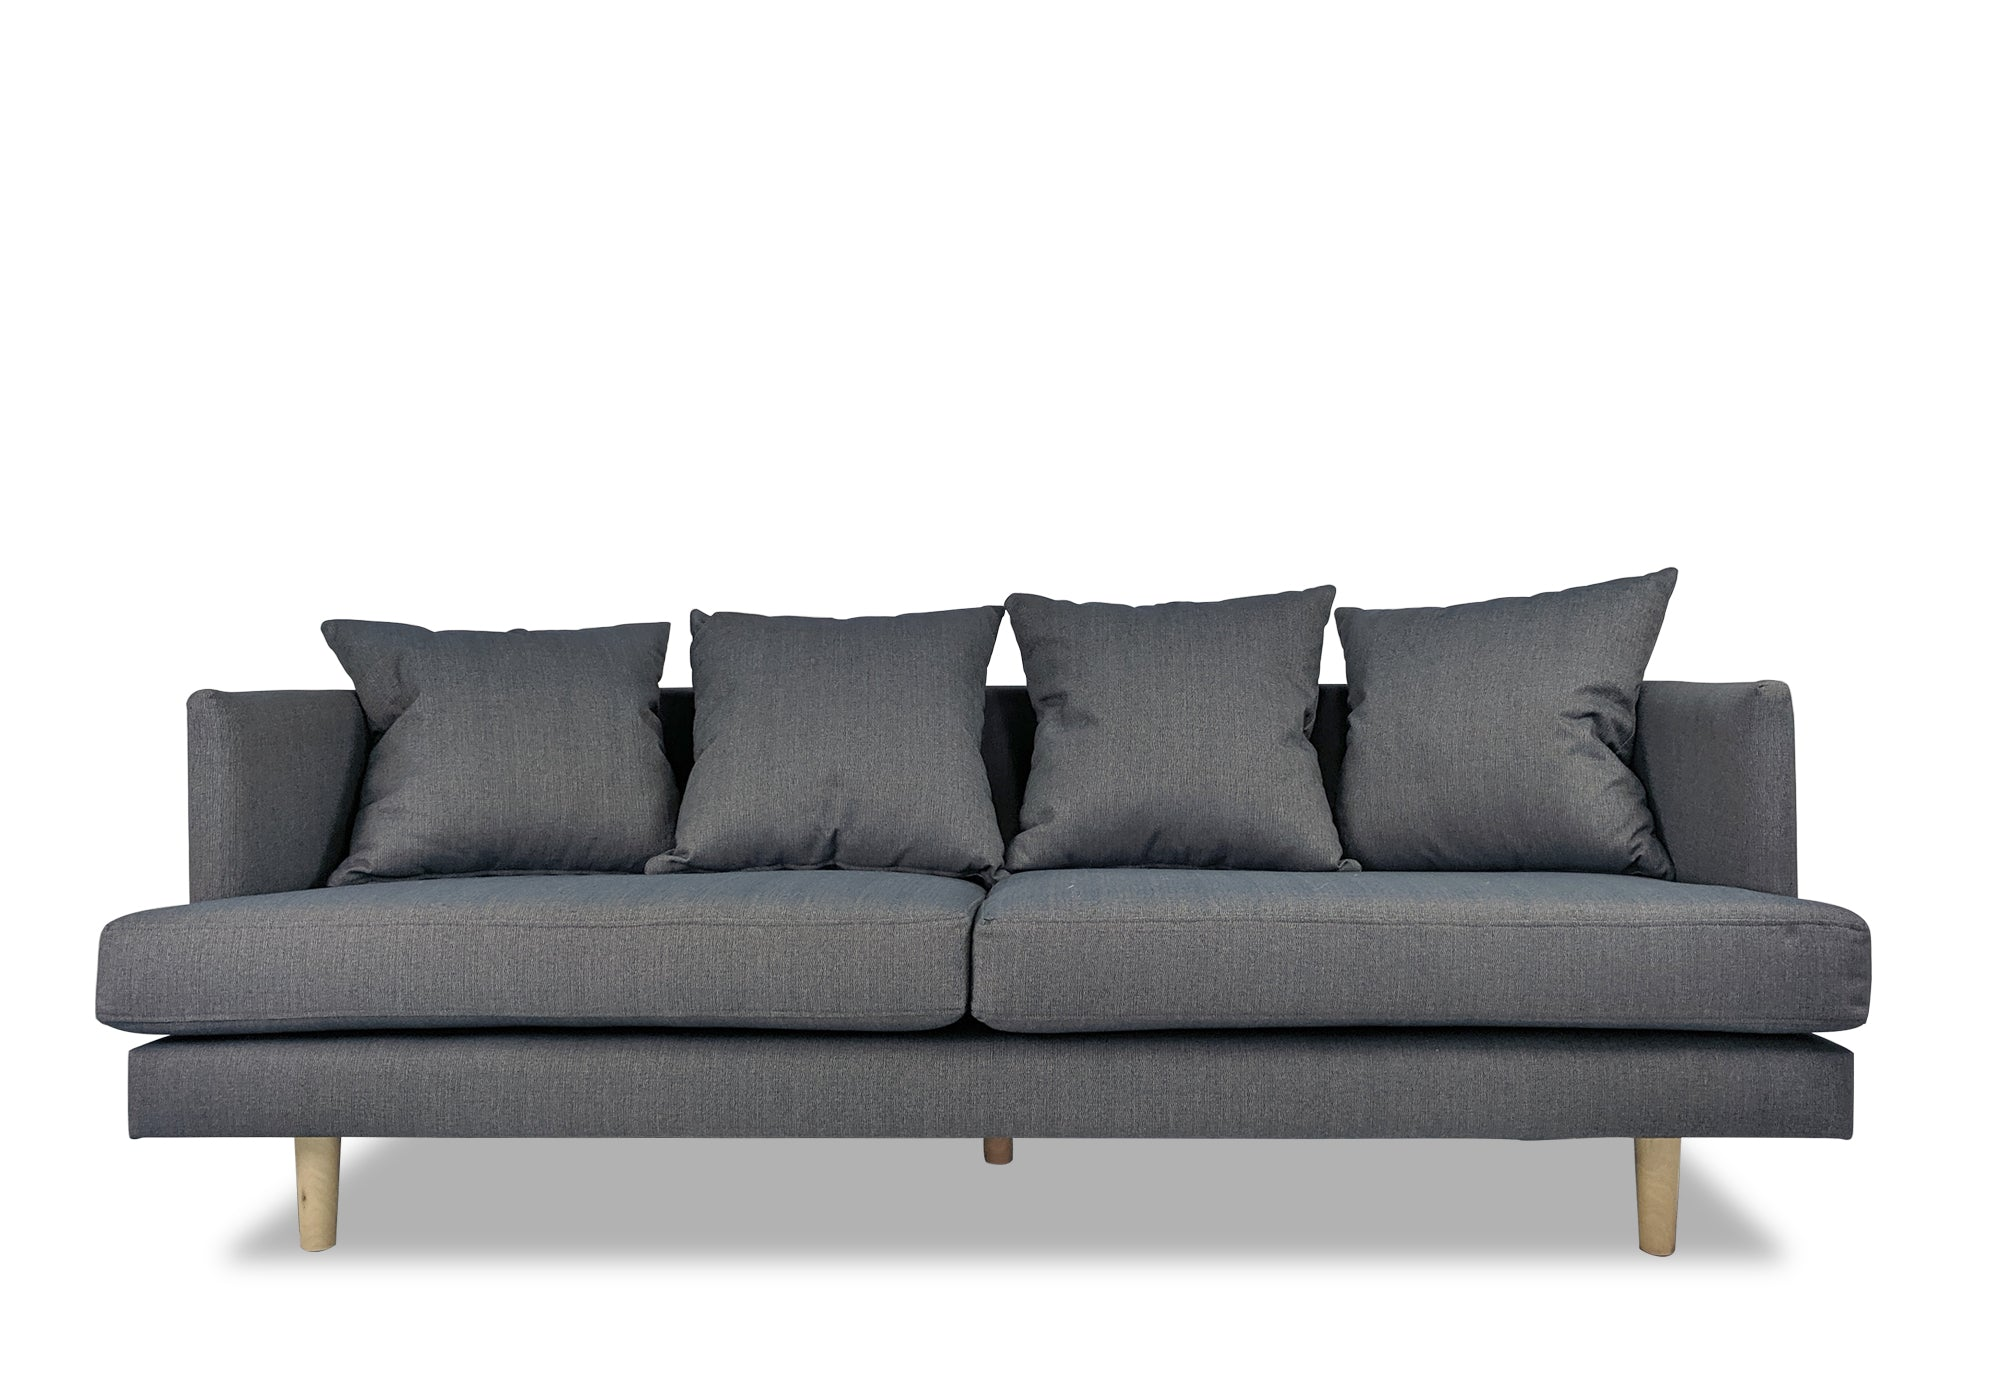 Domain Gallery vito Sofa